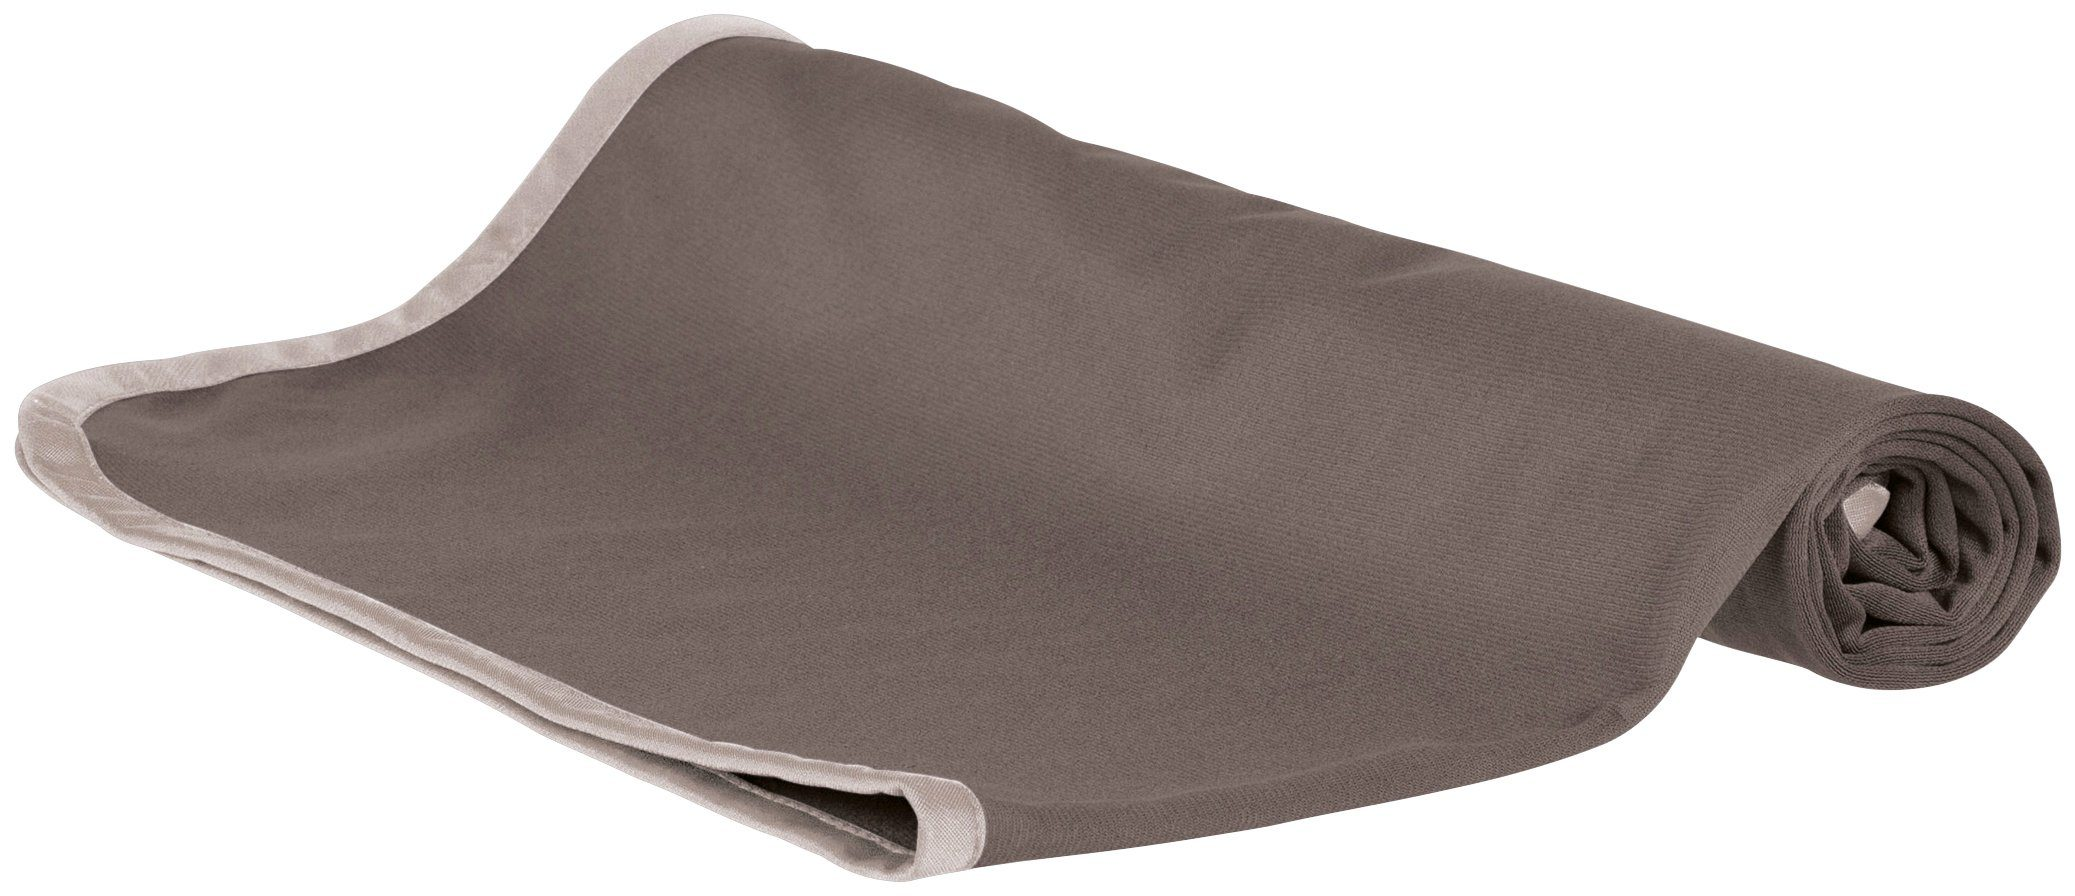 TRIXIE Hunde-Decke »Insect Shield«, BxT: 100x70 cm, taupe